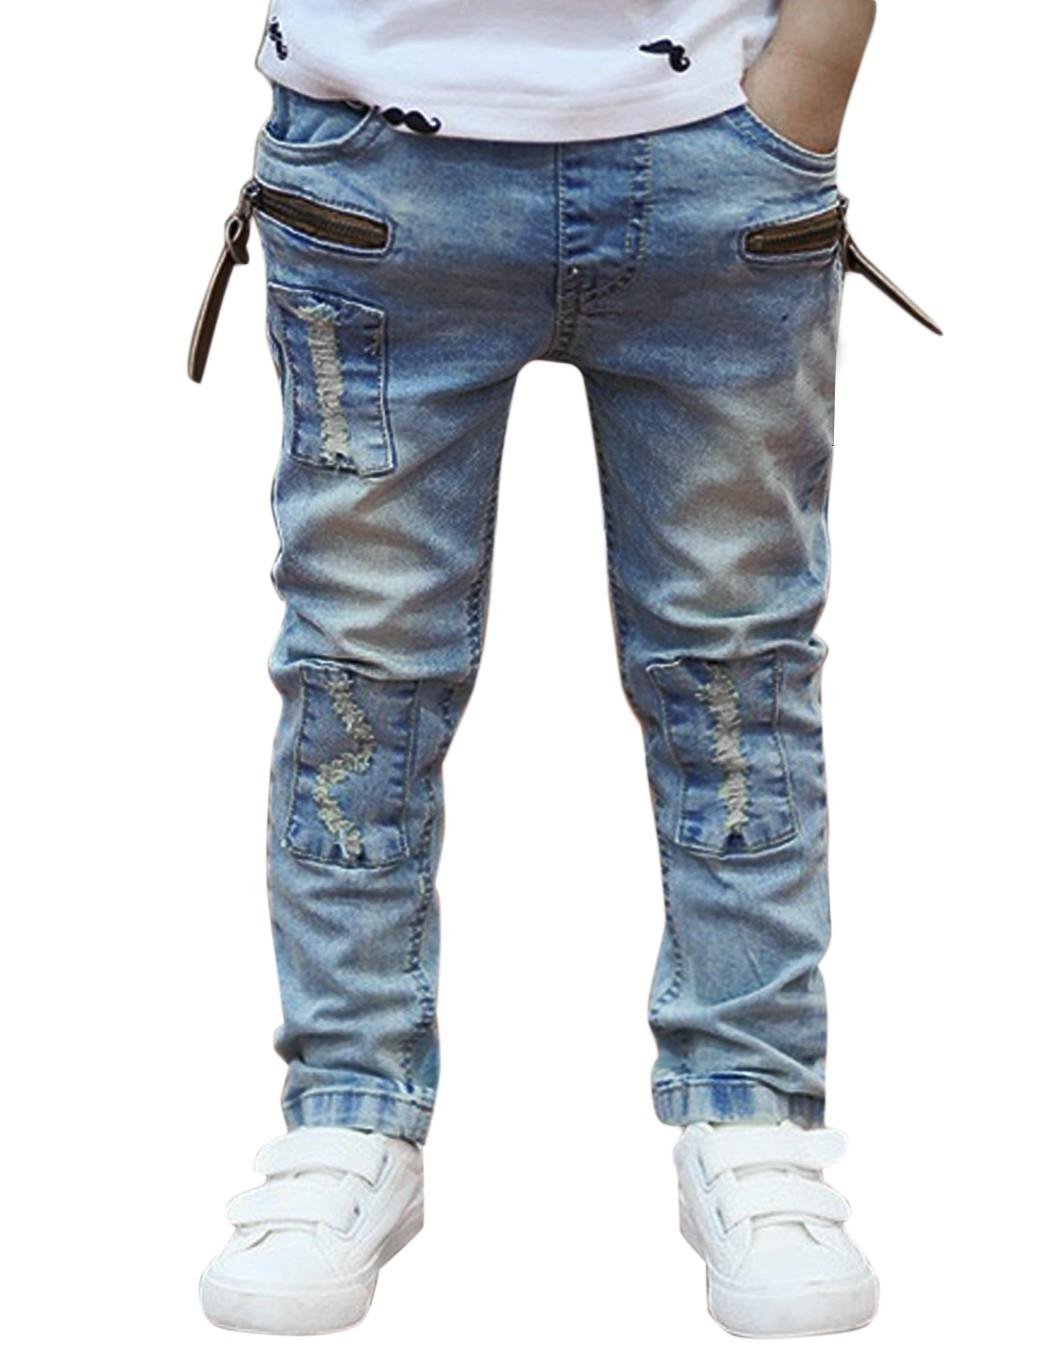 2016 Limited Casual Regular Light Mid Solid Zipper Fly Jeans New Fashion Kids Children Boys Jeans Denim Pants